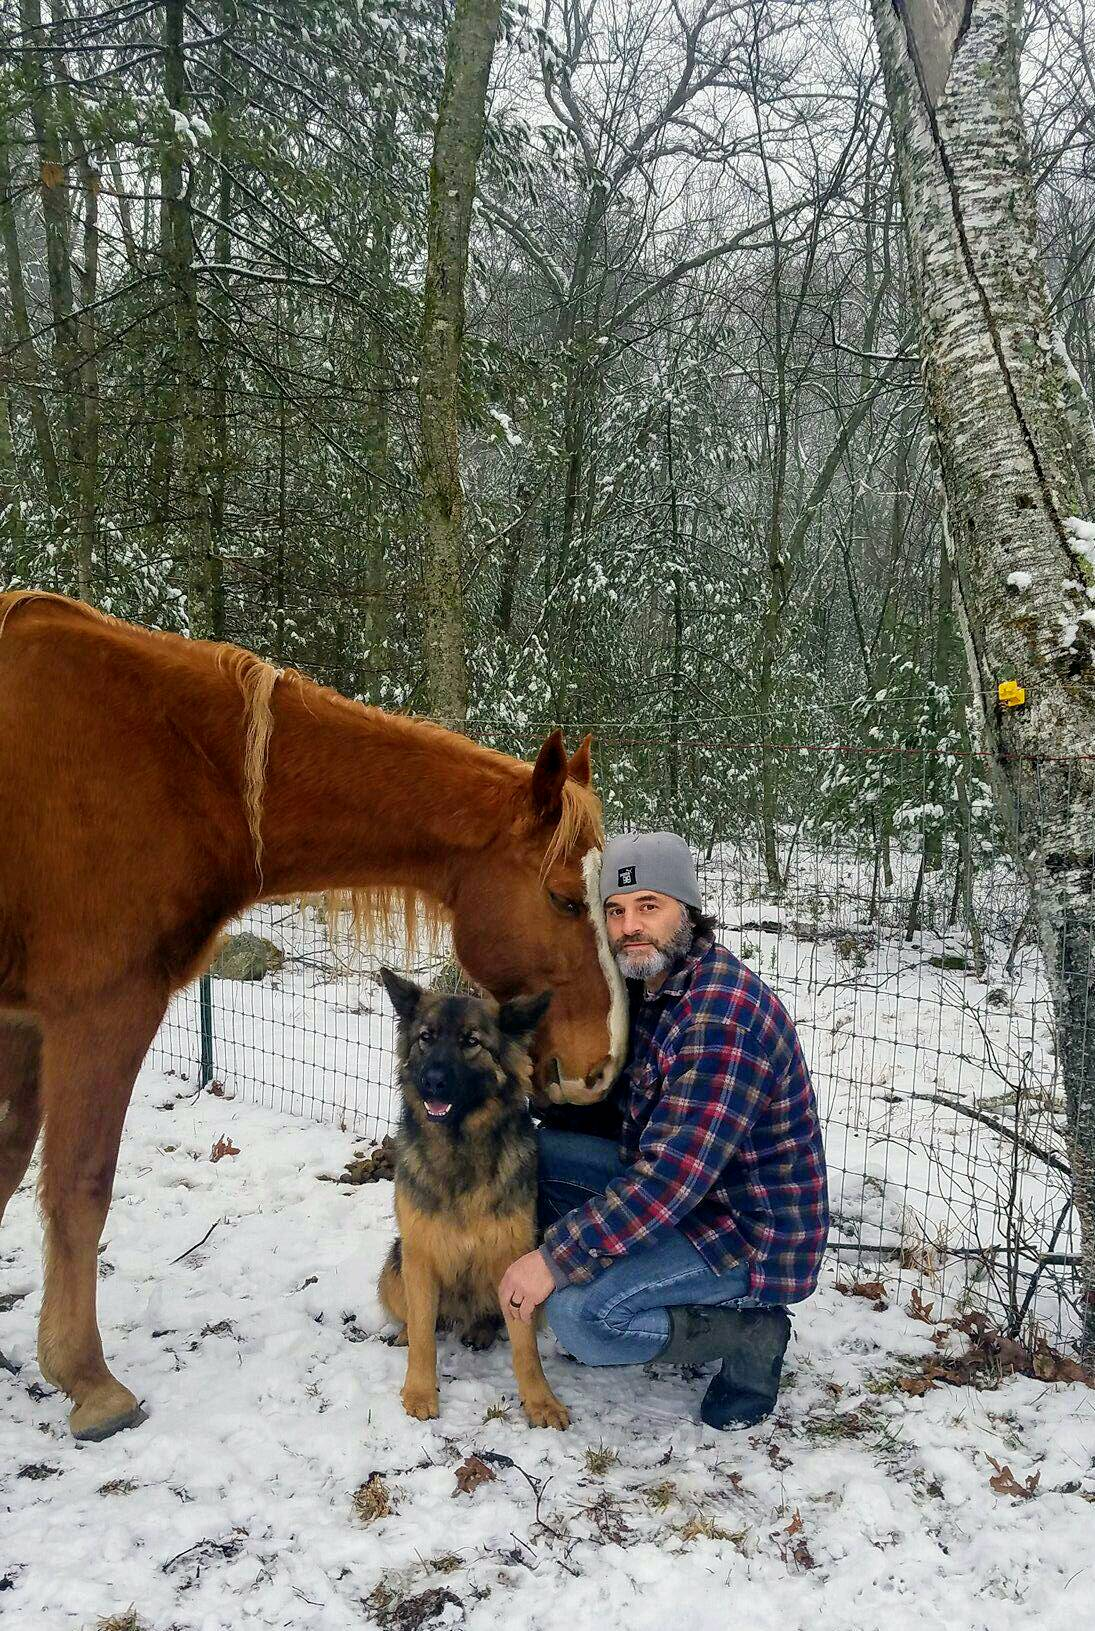 Mountain Man Vinny with his horse and dog